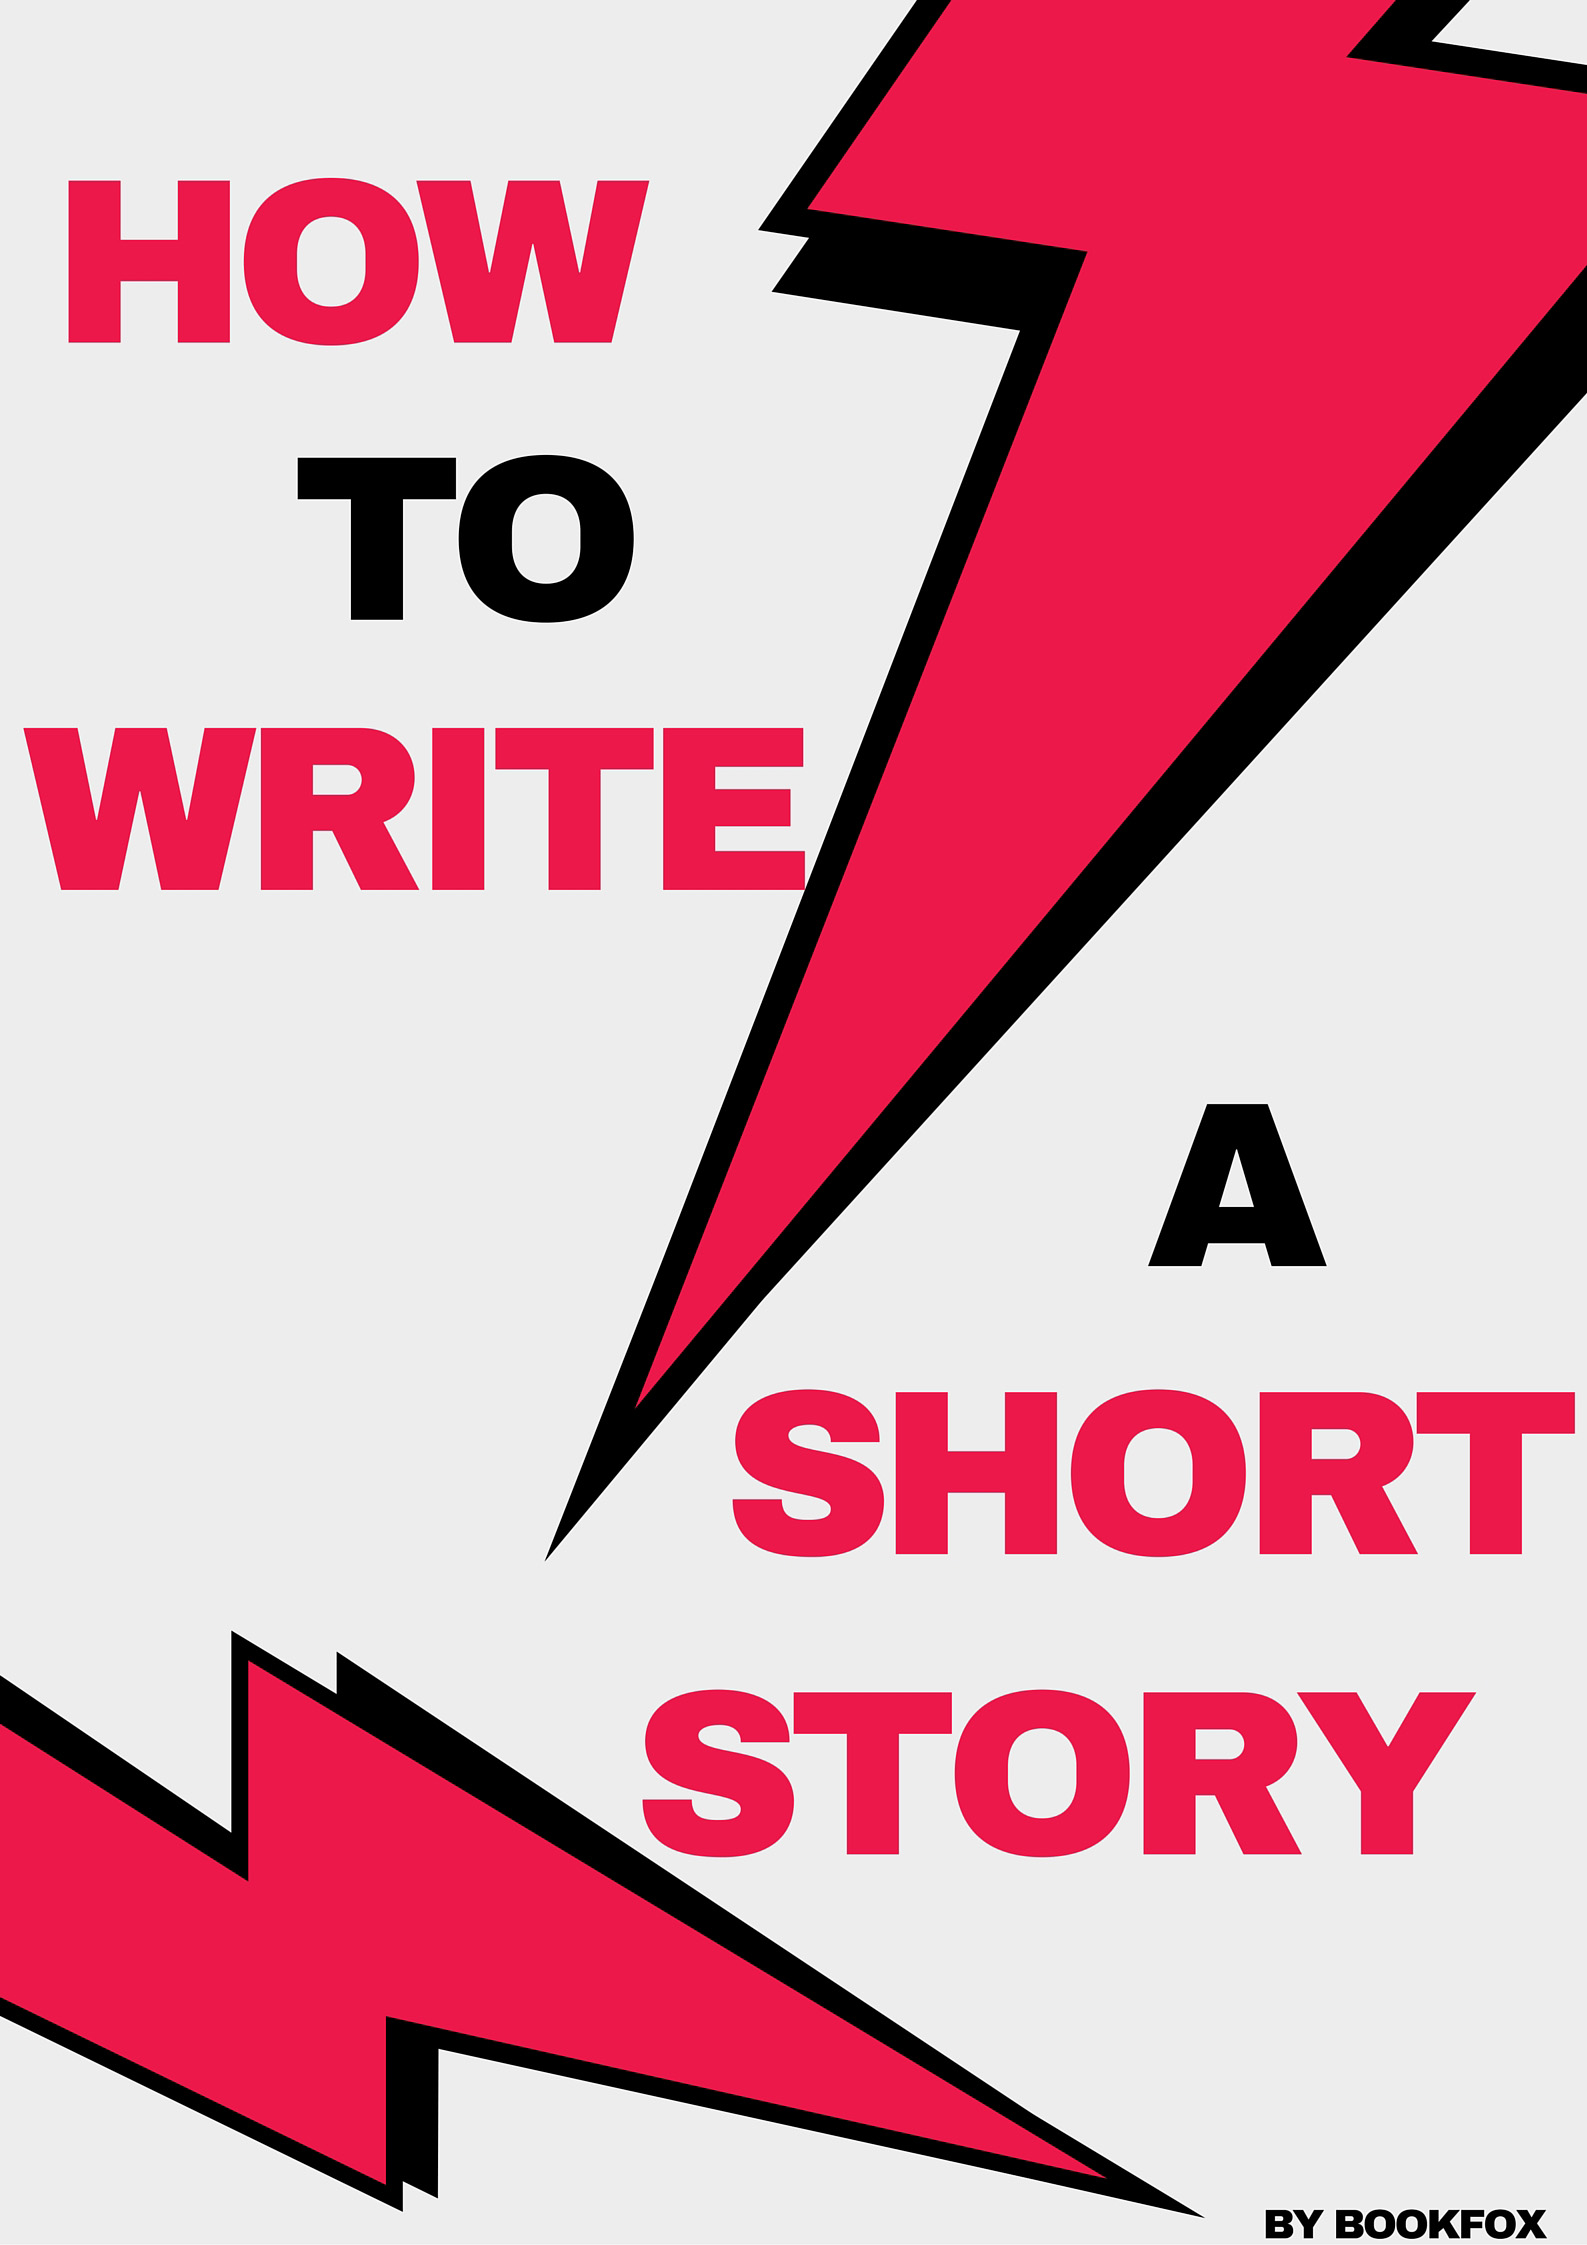 How To Write A Short Story The Complete Guide In 9 Steps